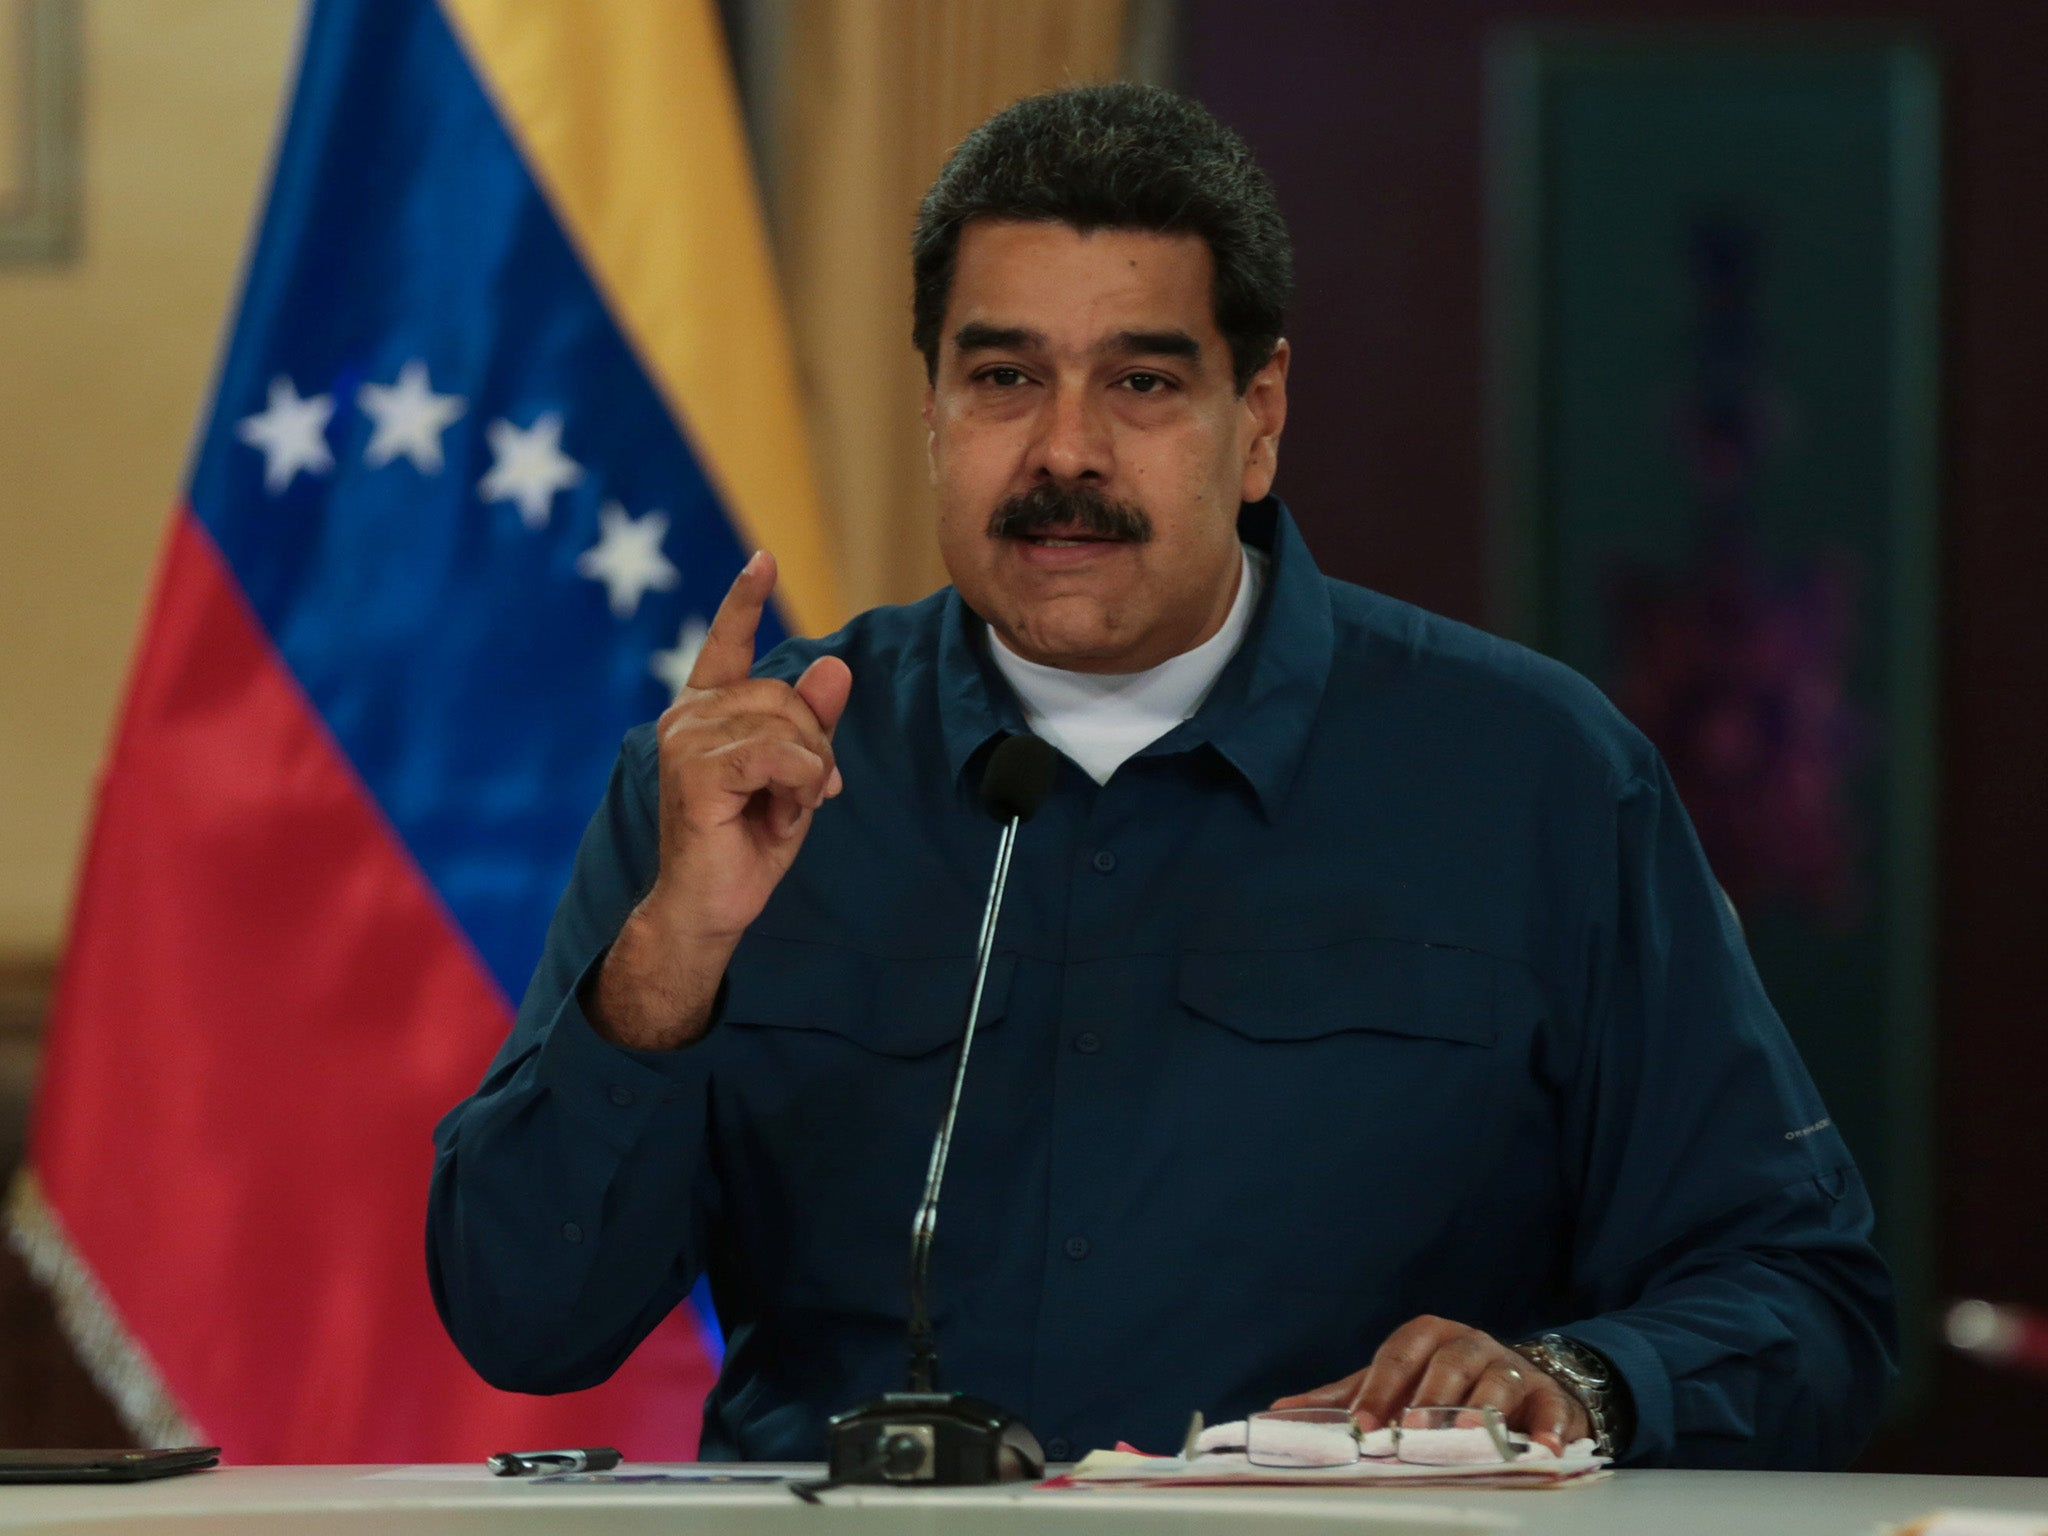 09a0a3dfe Venezuela's President Nicolas Maduro tells people fleeing country: 'Stop  cleaning toilets abroad and come back'   The Independent